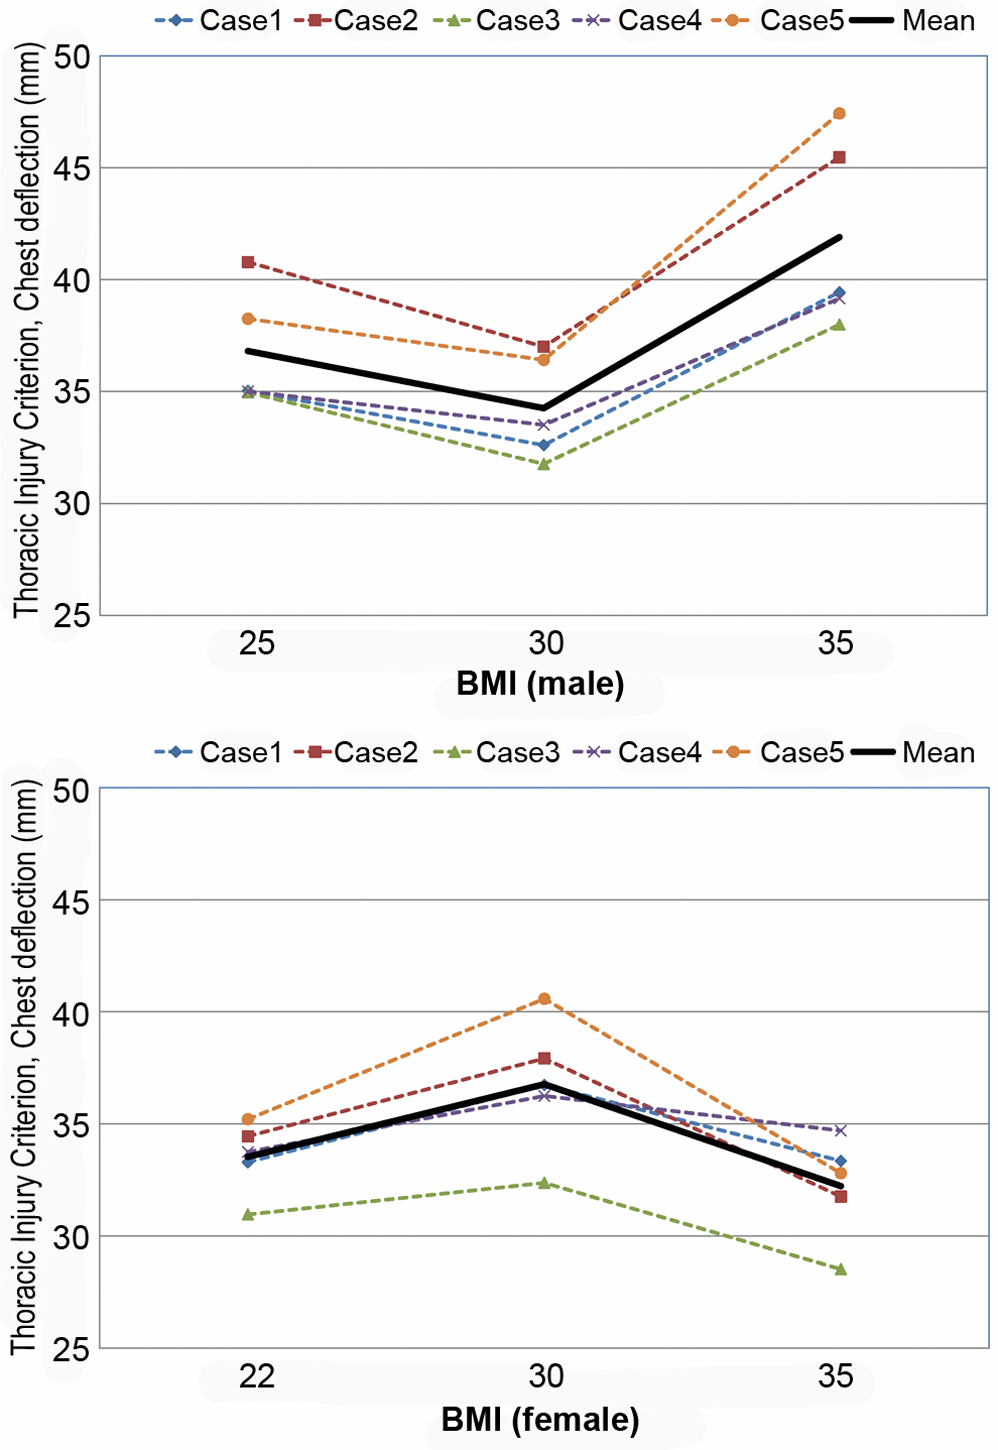 Computational investigation of the effect of obesity on the thorax injury criterion (chest deflection, mm) for male (top) and female (bottom).